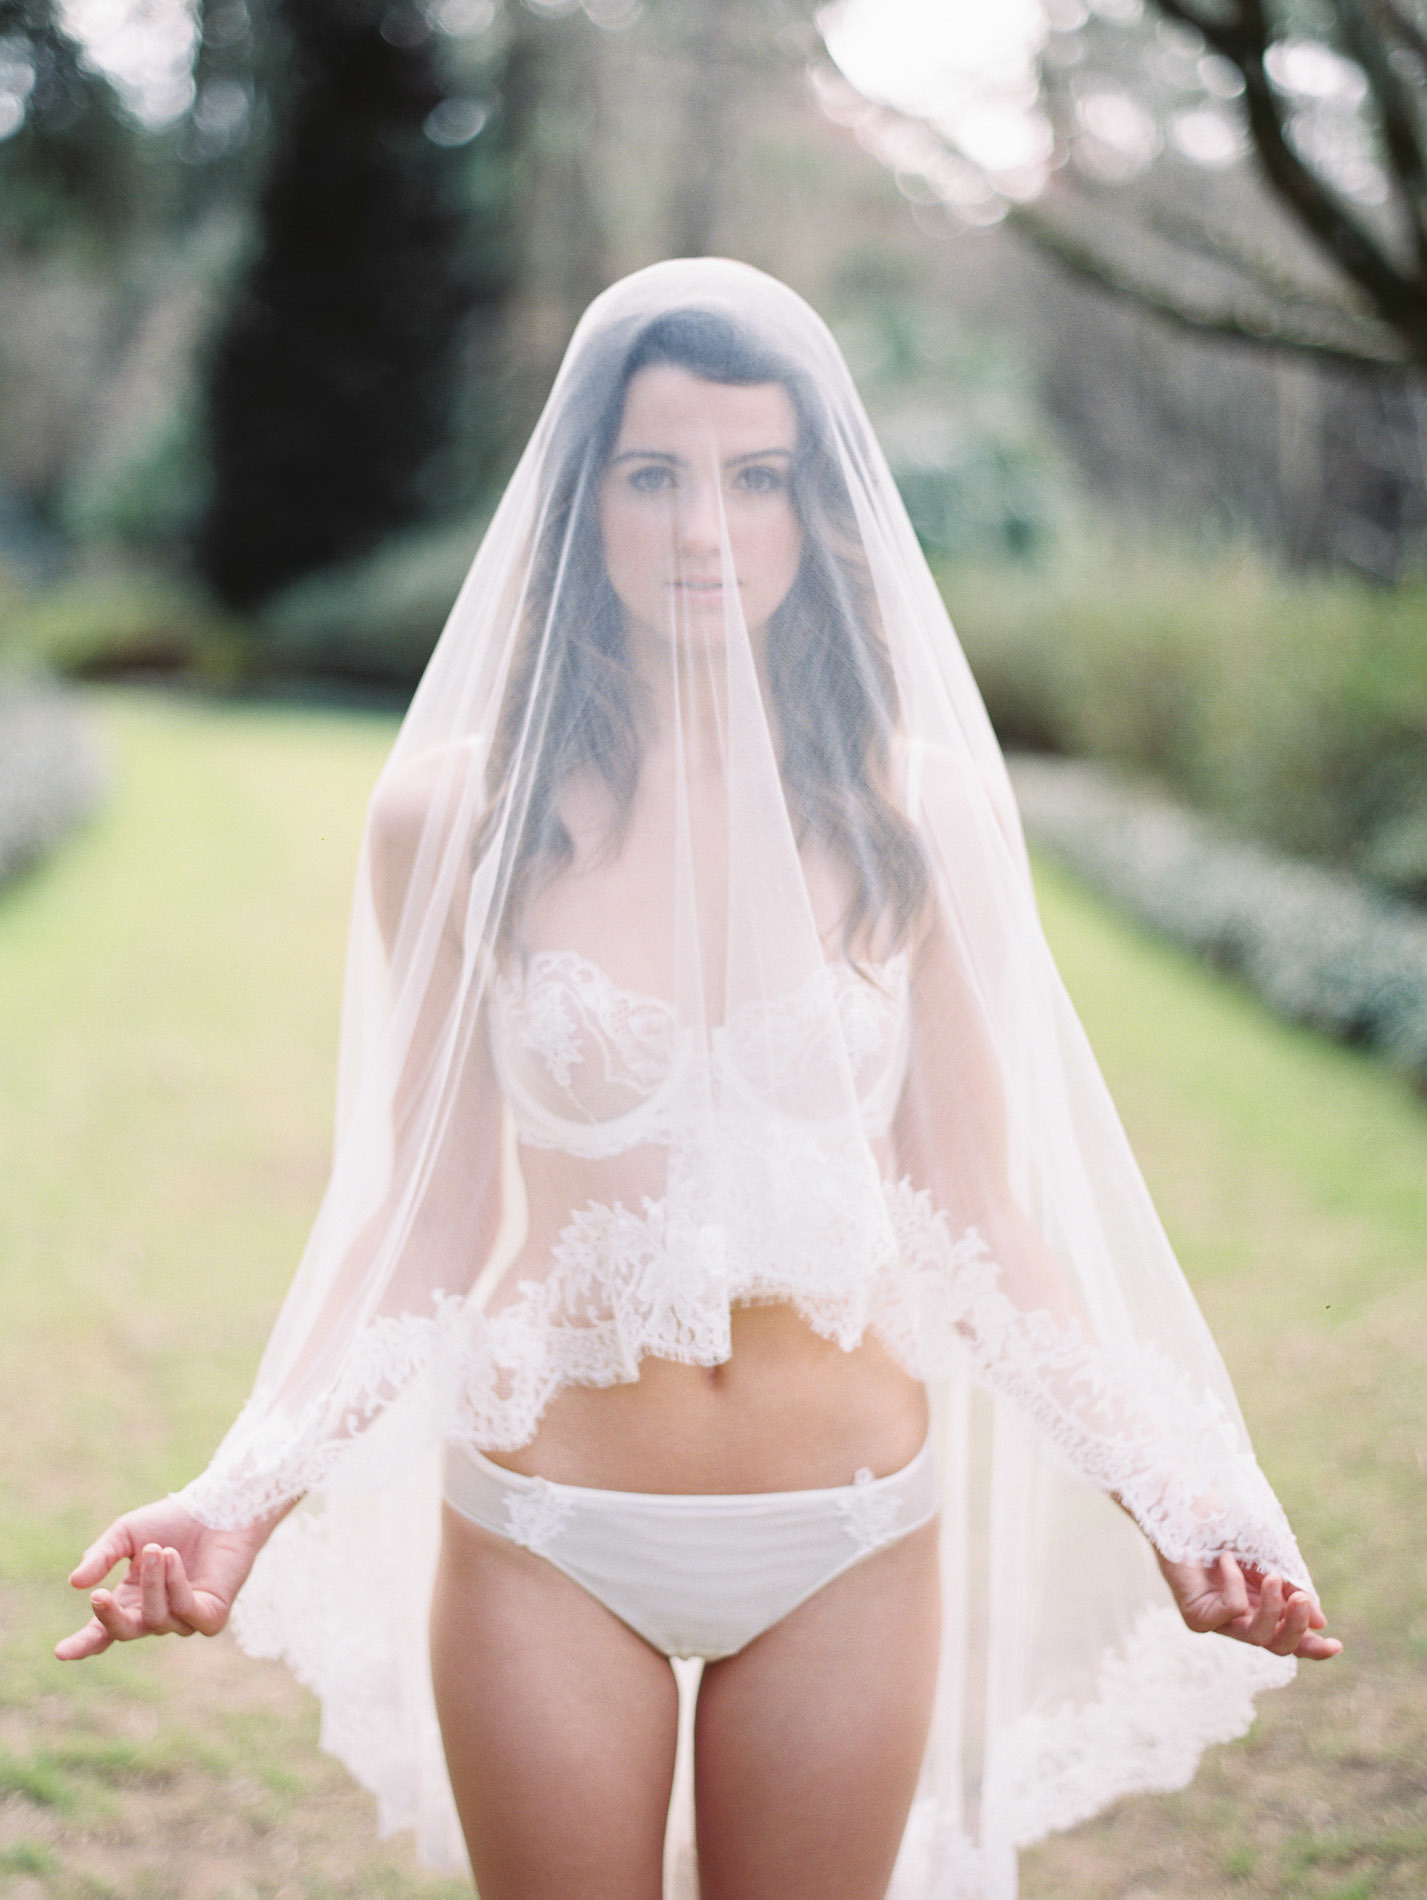 Remarkable, rather Beautiful naked wedding girl variant